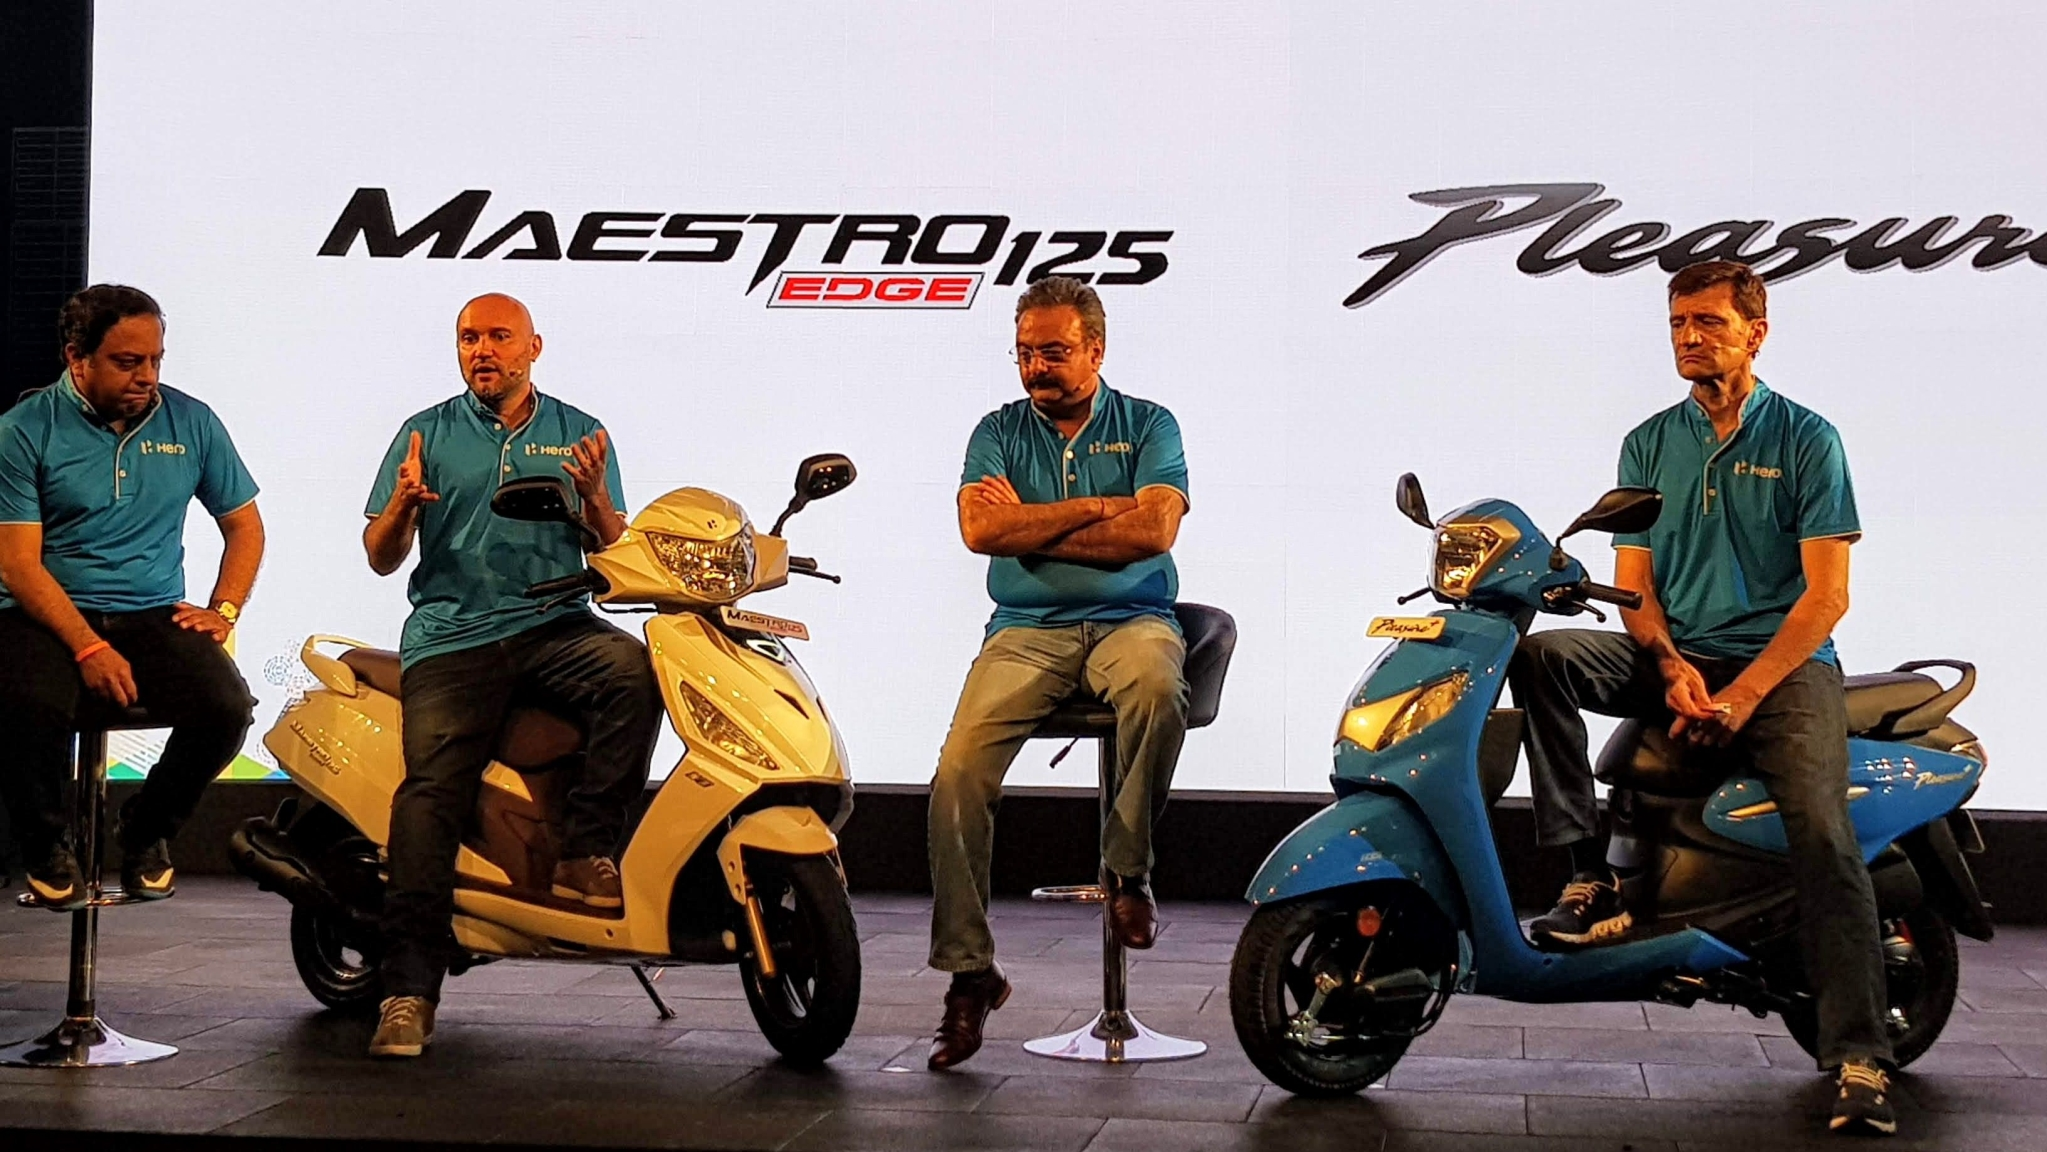 Hero Launches Updated Maestro Edge 125 and Pleasure+ Scooters